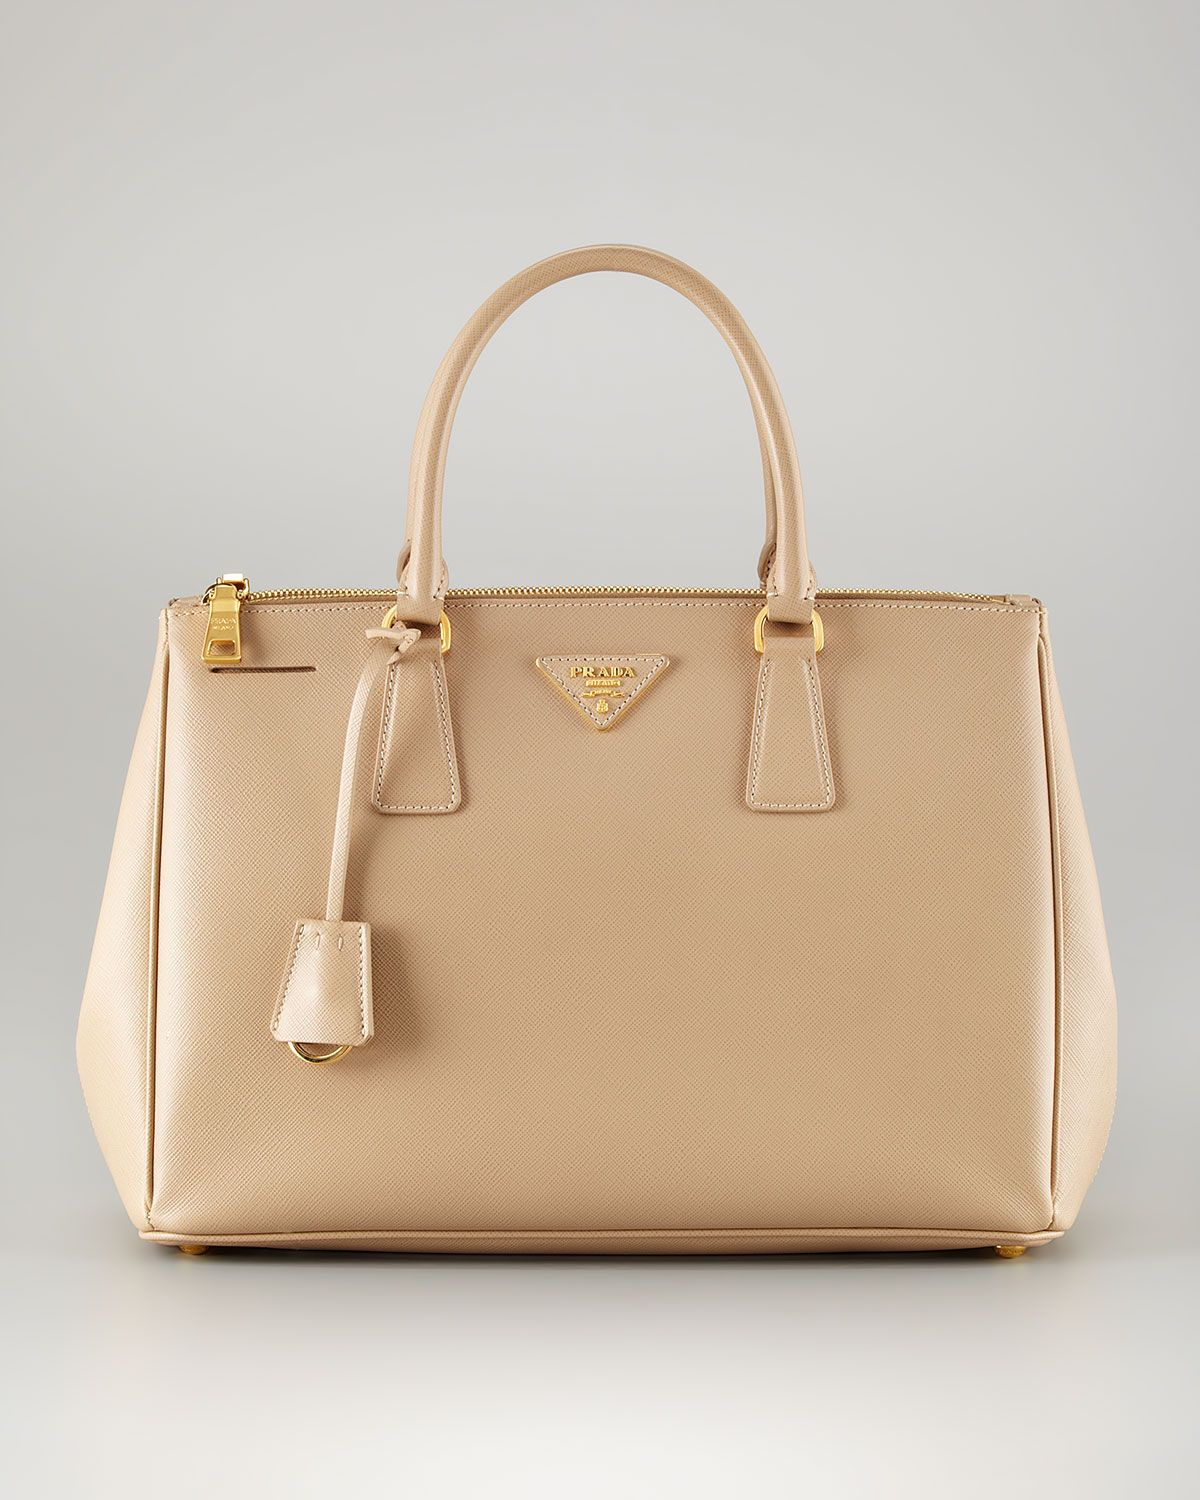 5a469881a68a Prada Lux tote. Nude color. gold tone hardware. | TheUltimateBag ...